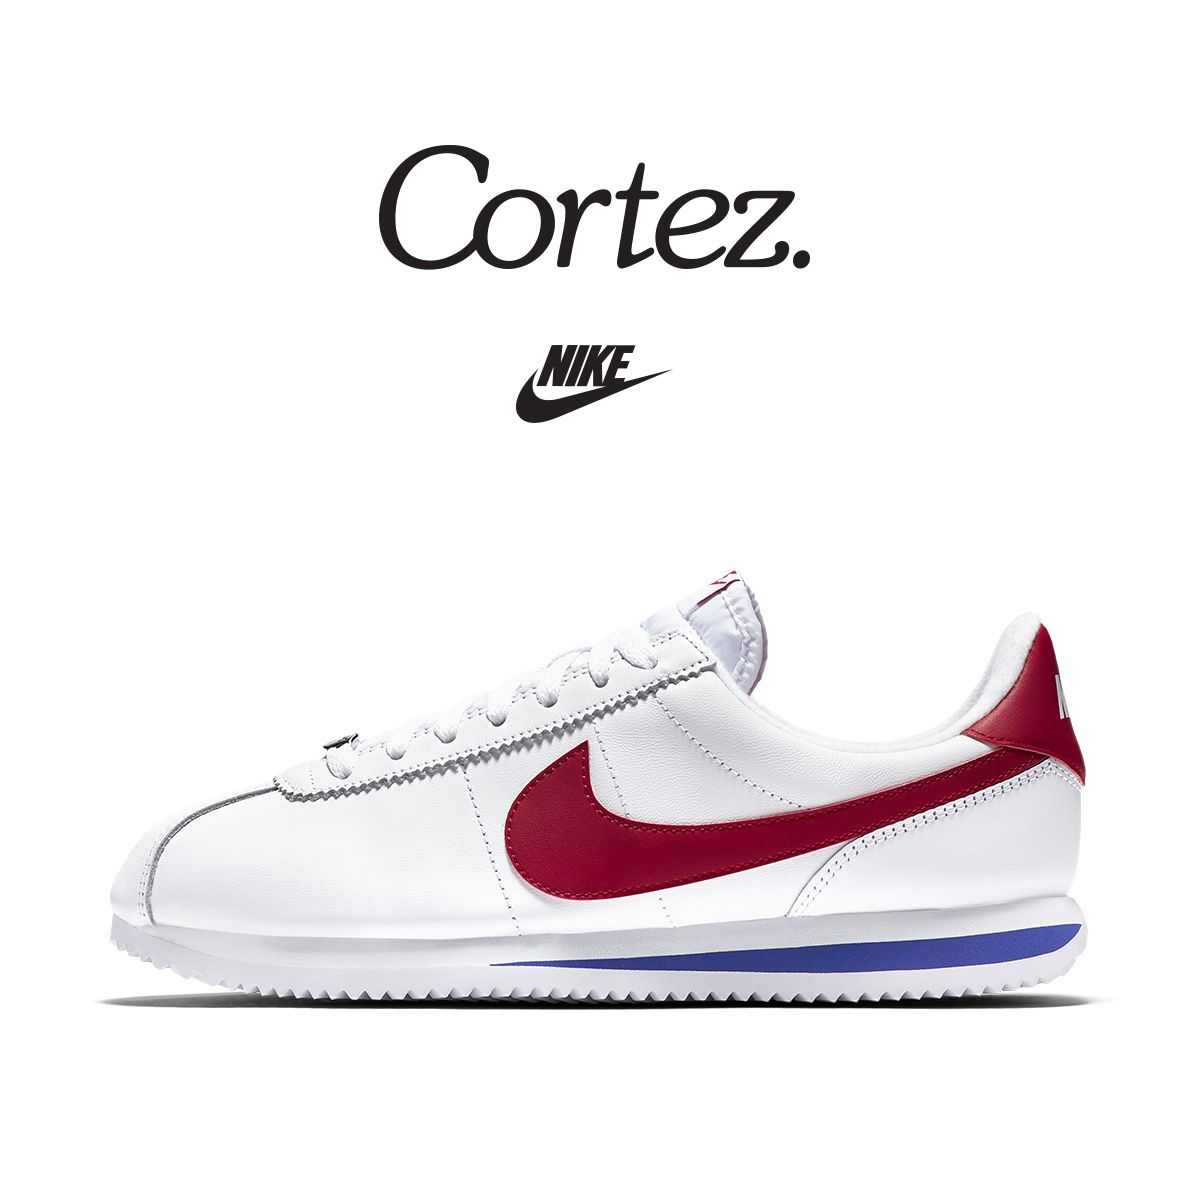 on sale 1a1e6 ea735 The Nike Cortez turns 45! Celebrate by copping this legendary colorway.